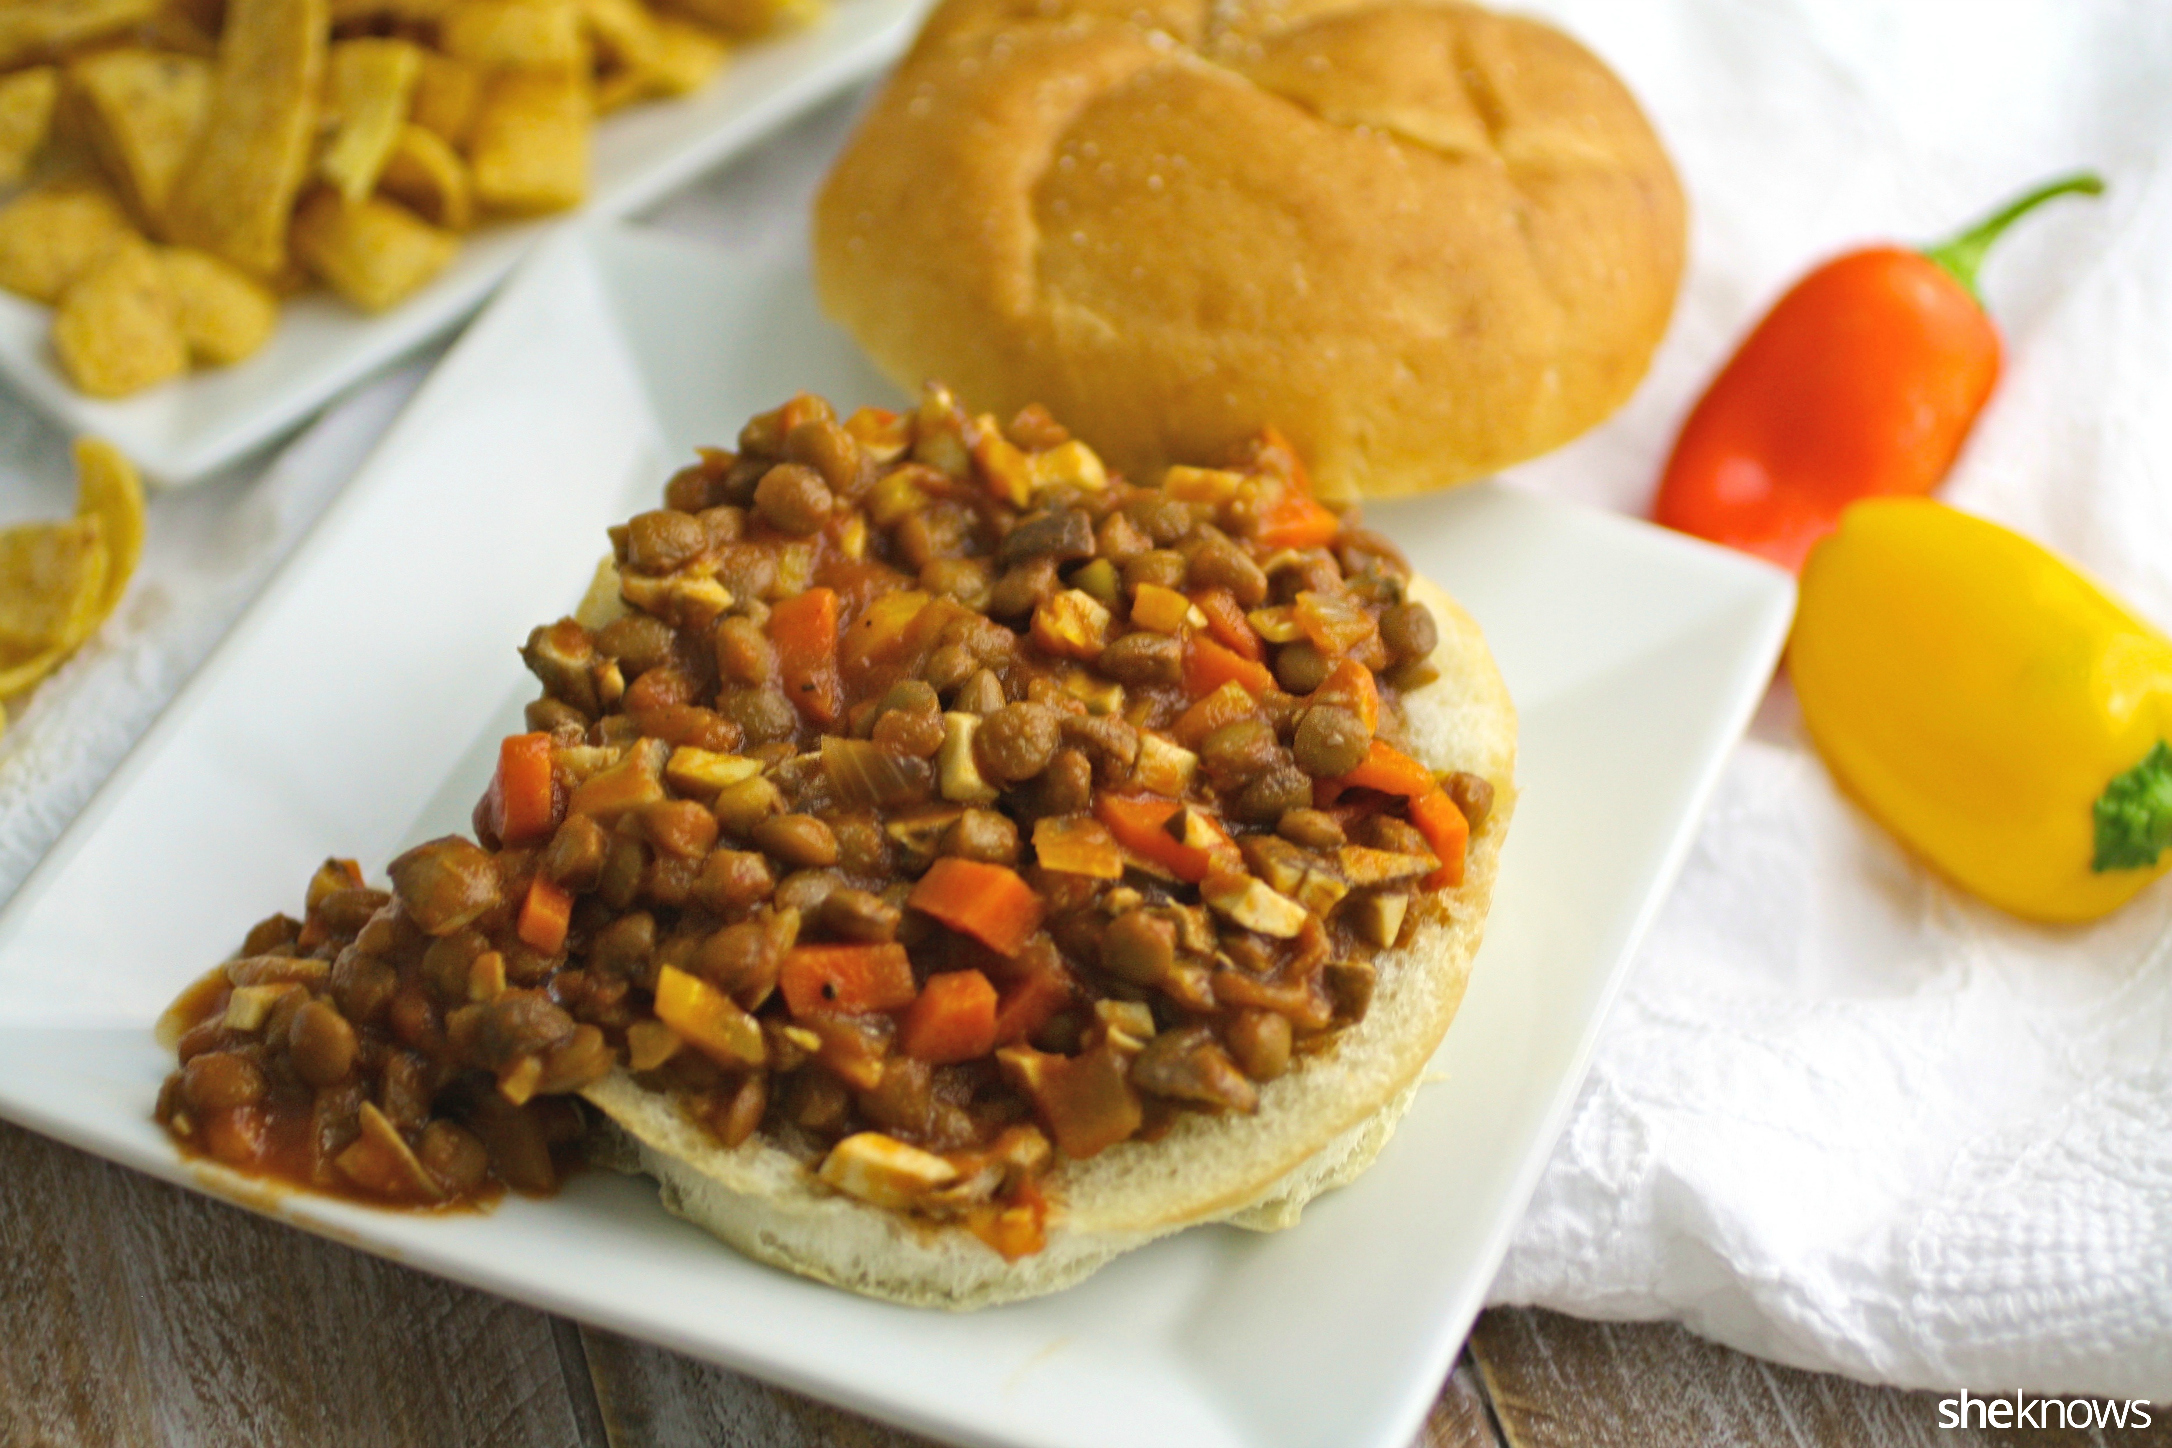 These lentil and mushroom sloppy Joes are sure to please